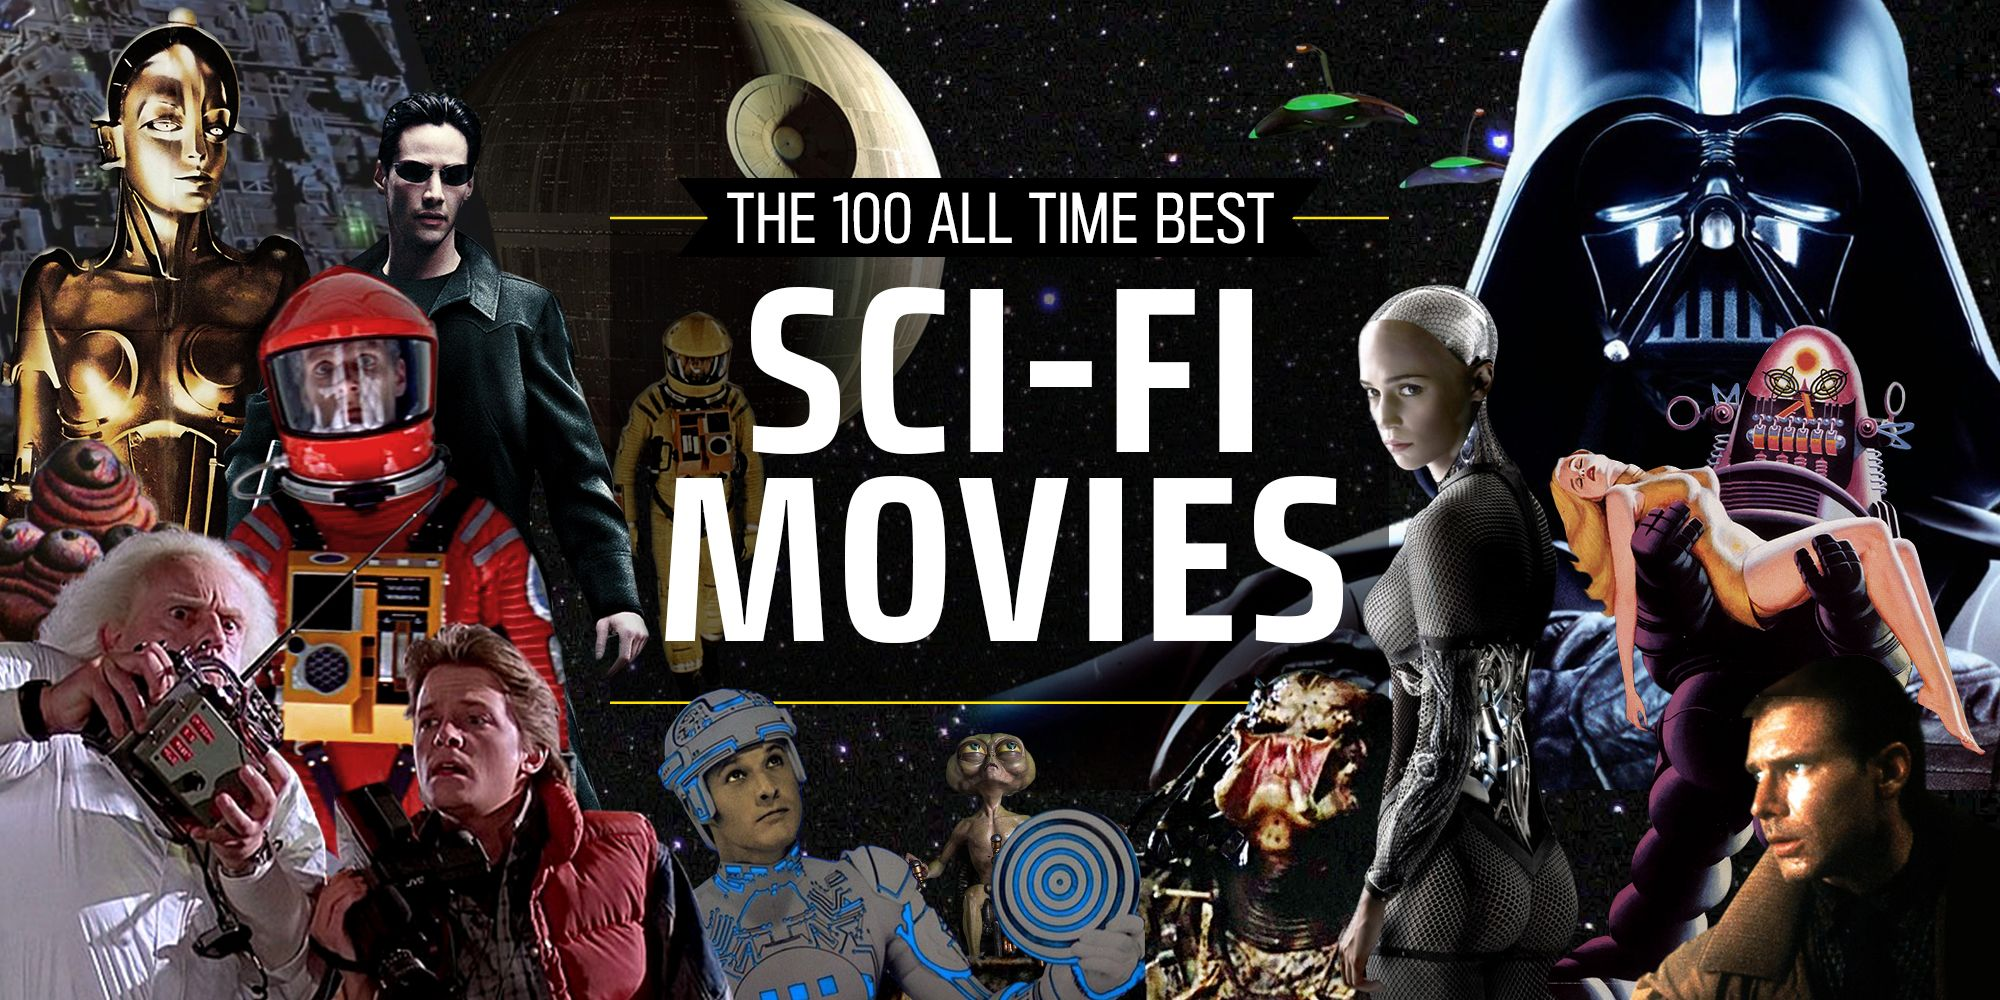 All Things Fair 1995 Movie Online Free 100 best sci fi movies of all time - best science fiction